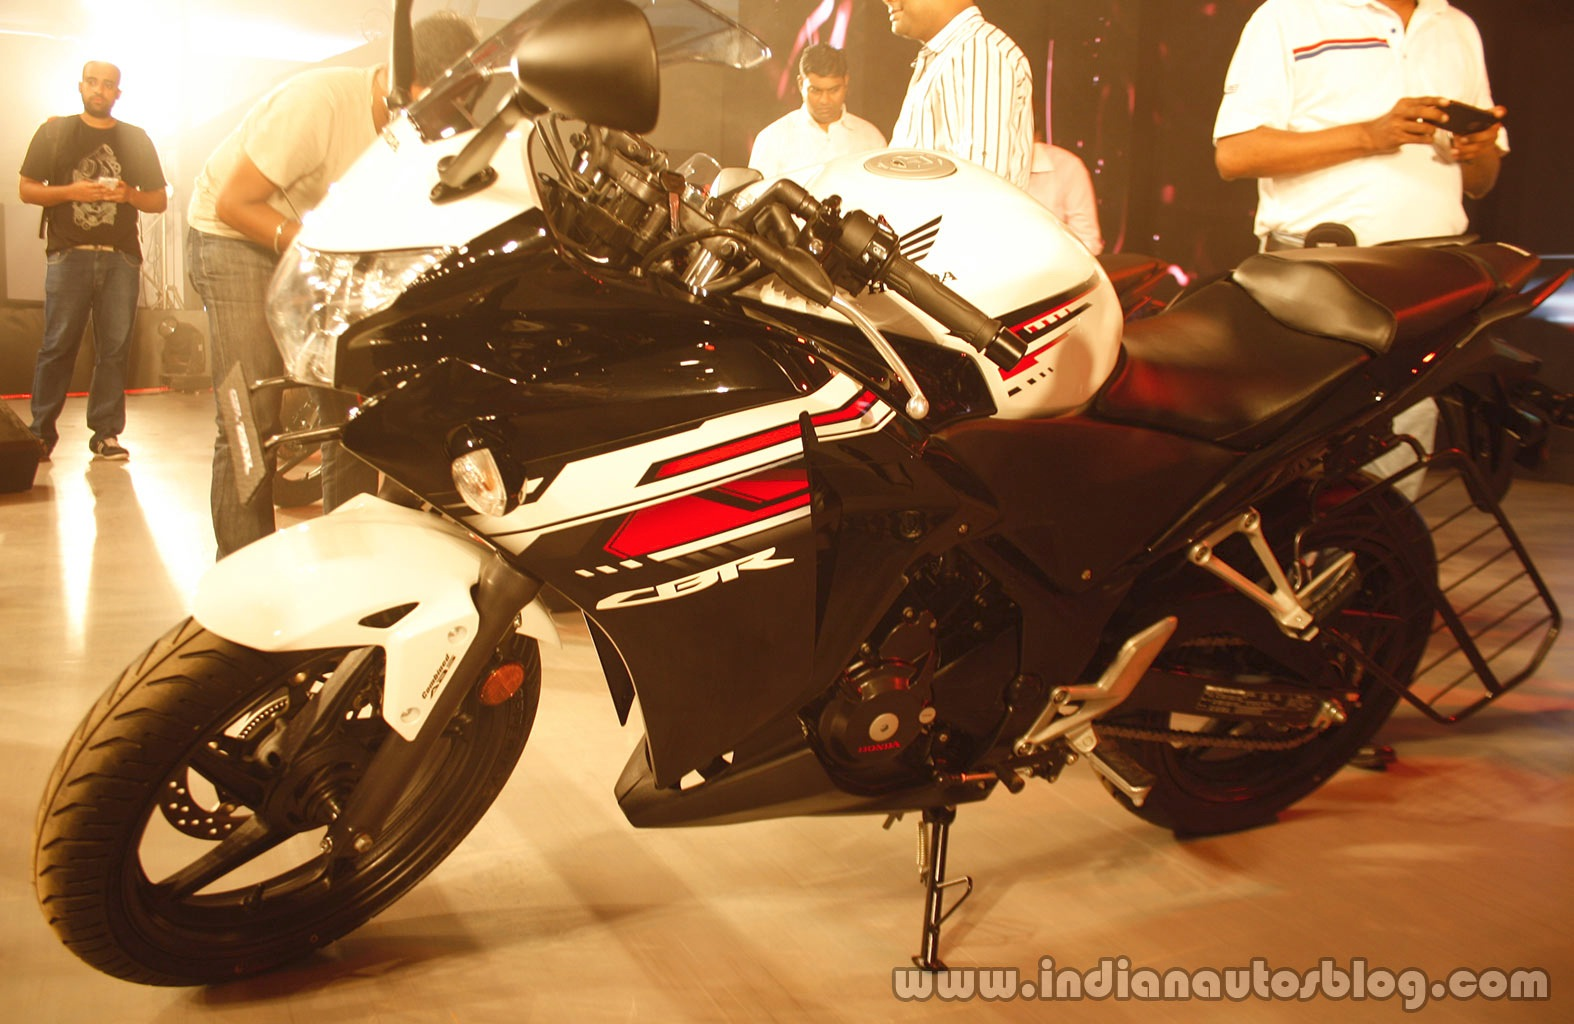 2015 Honda CBR250R India spec side from Revfest